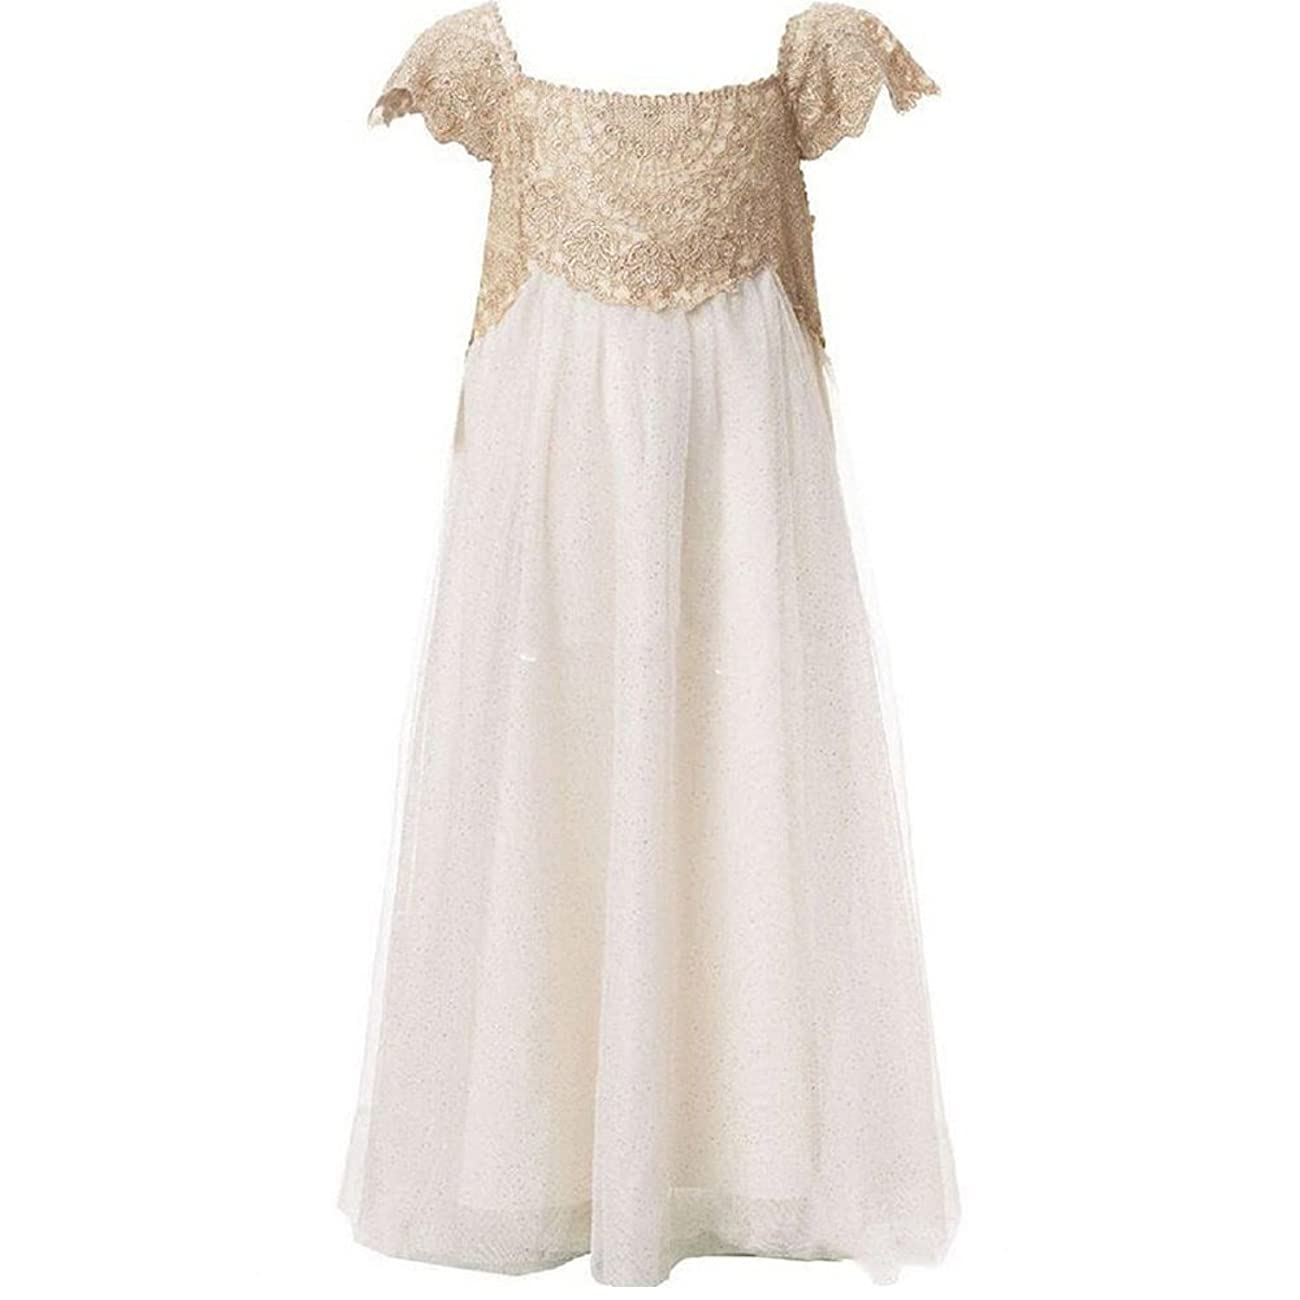 Flower Girl Wedding Vintage Champagne Lace Tulle First Communion Dress 1